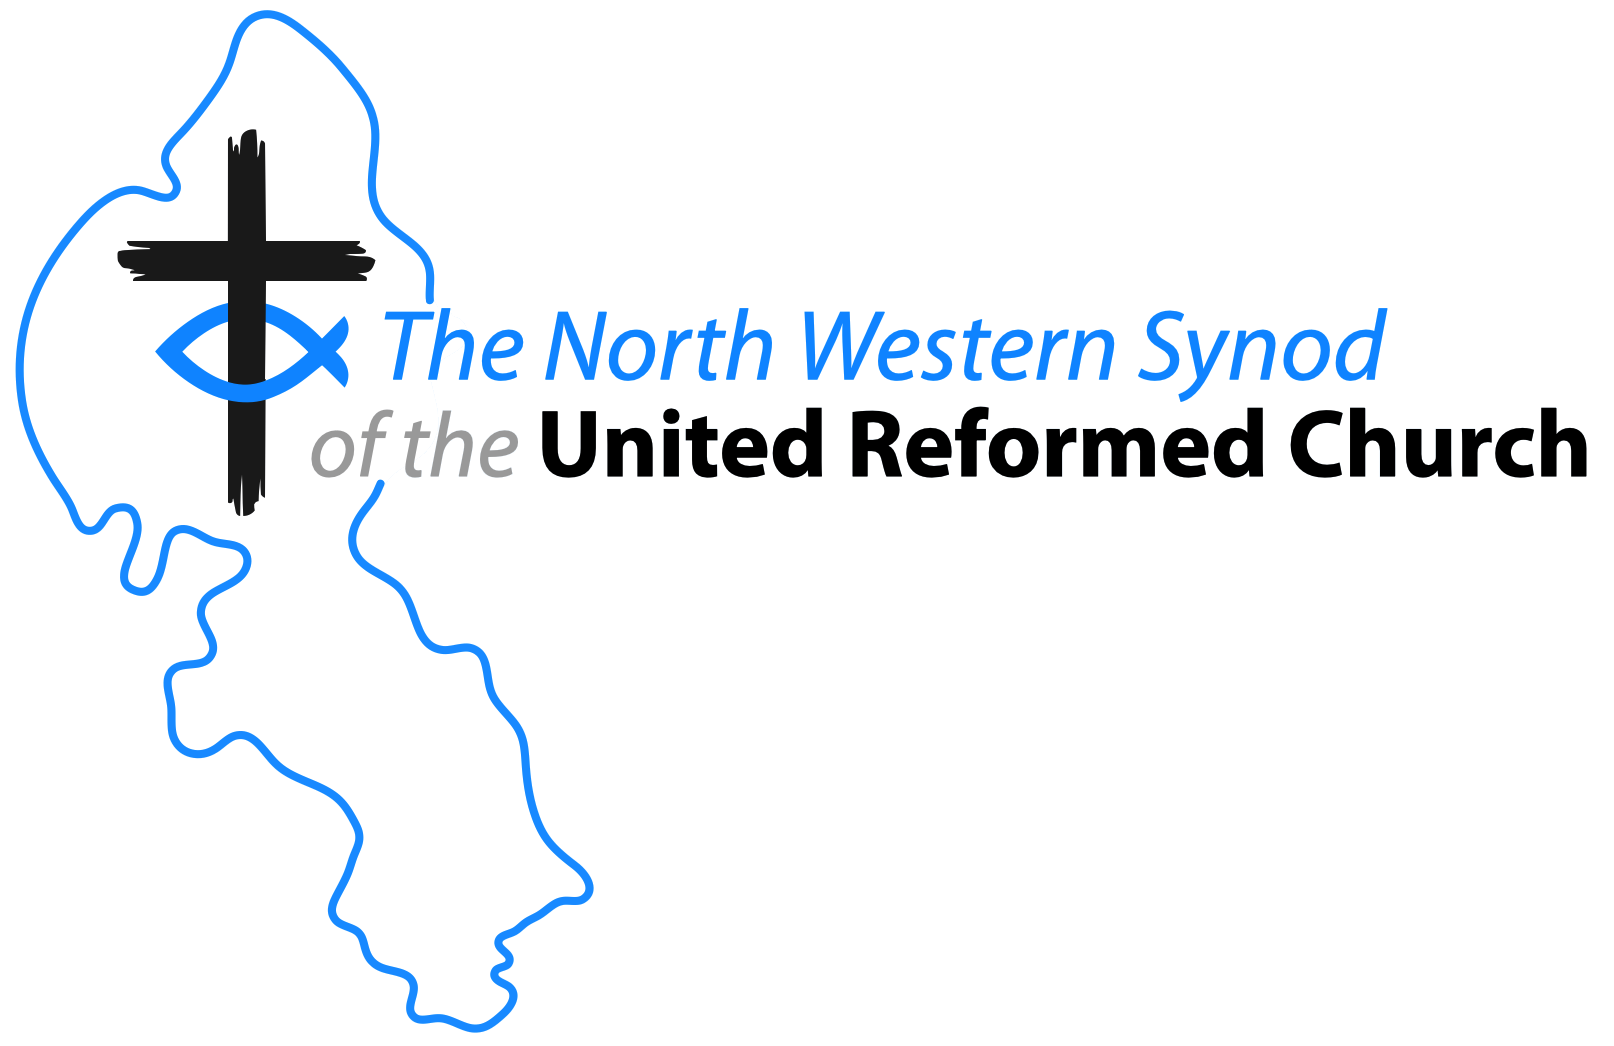 North Western Synod of the United Reformed Church